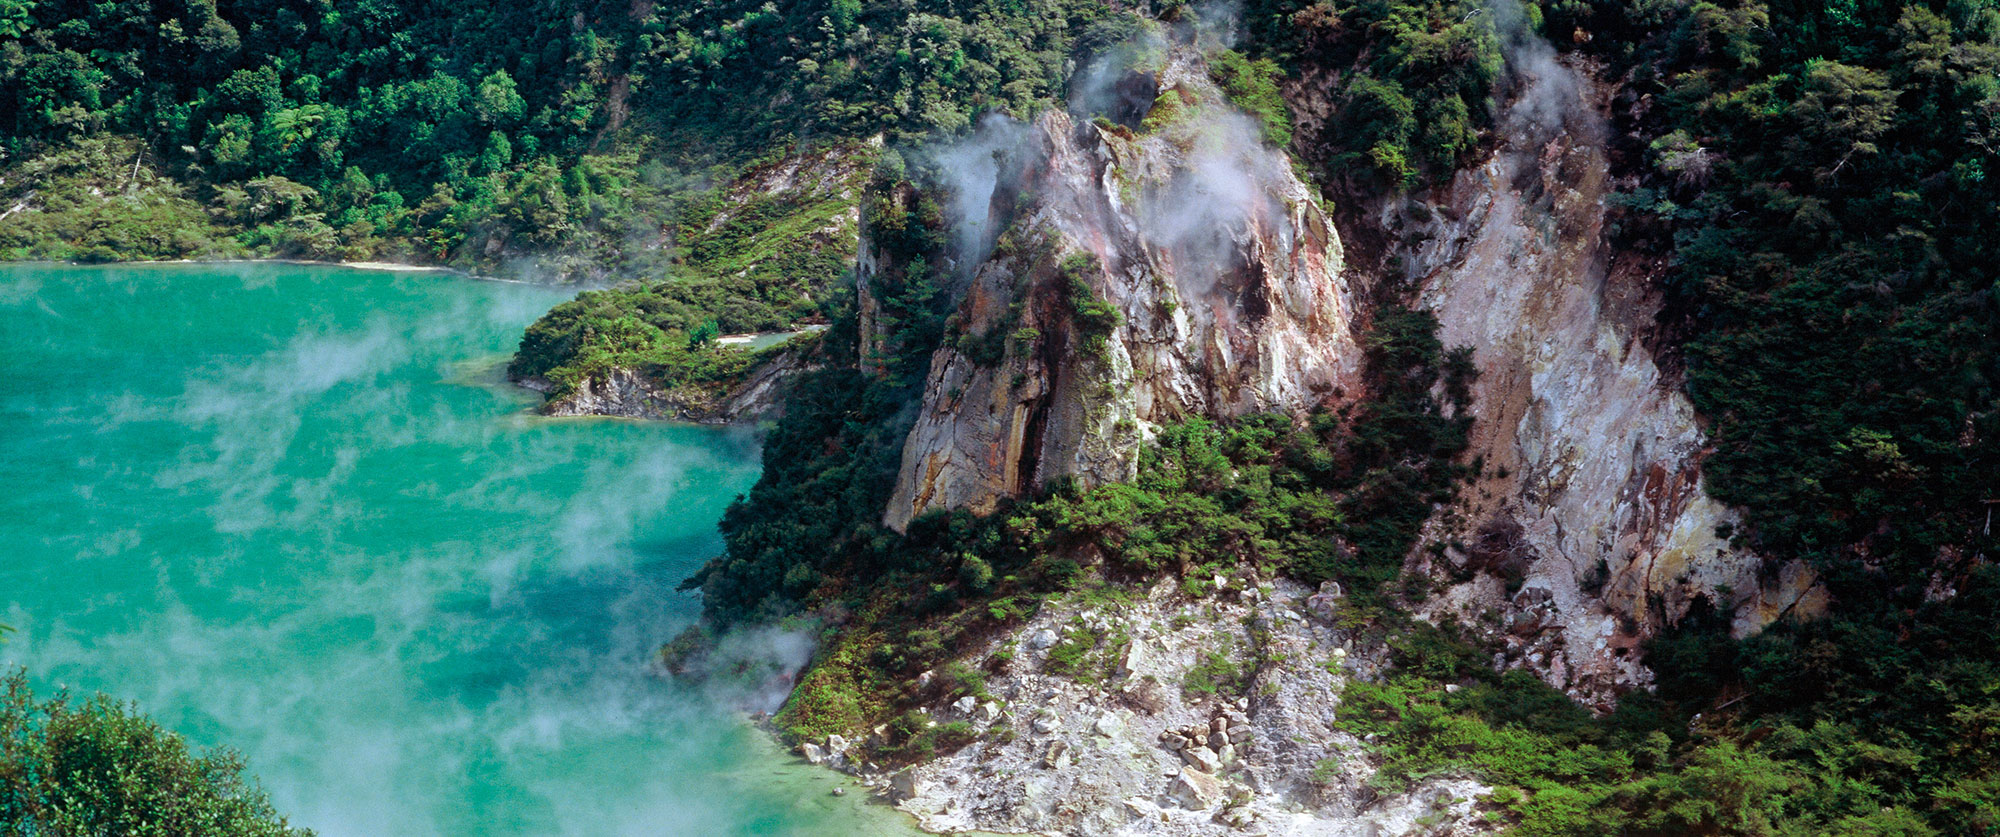 New Zealand Fiji Package Culture - Rotorua New Zealand